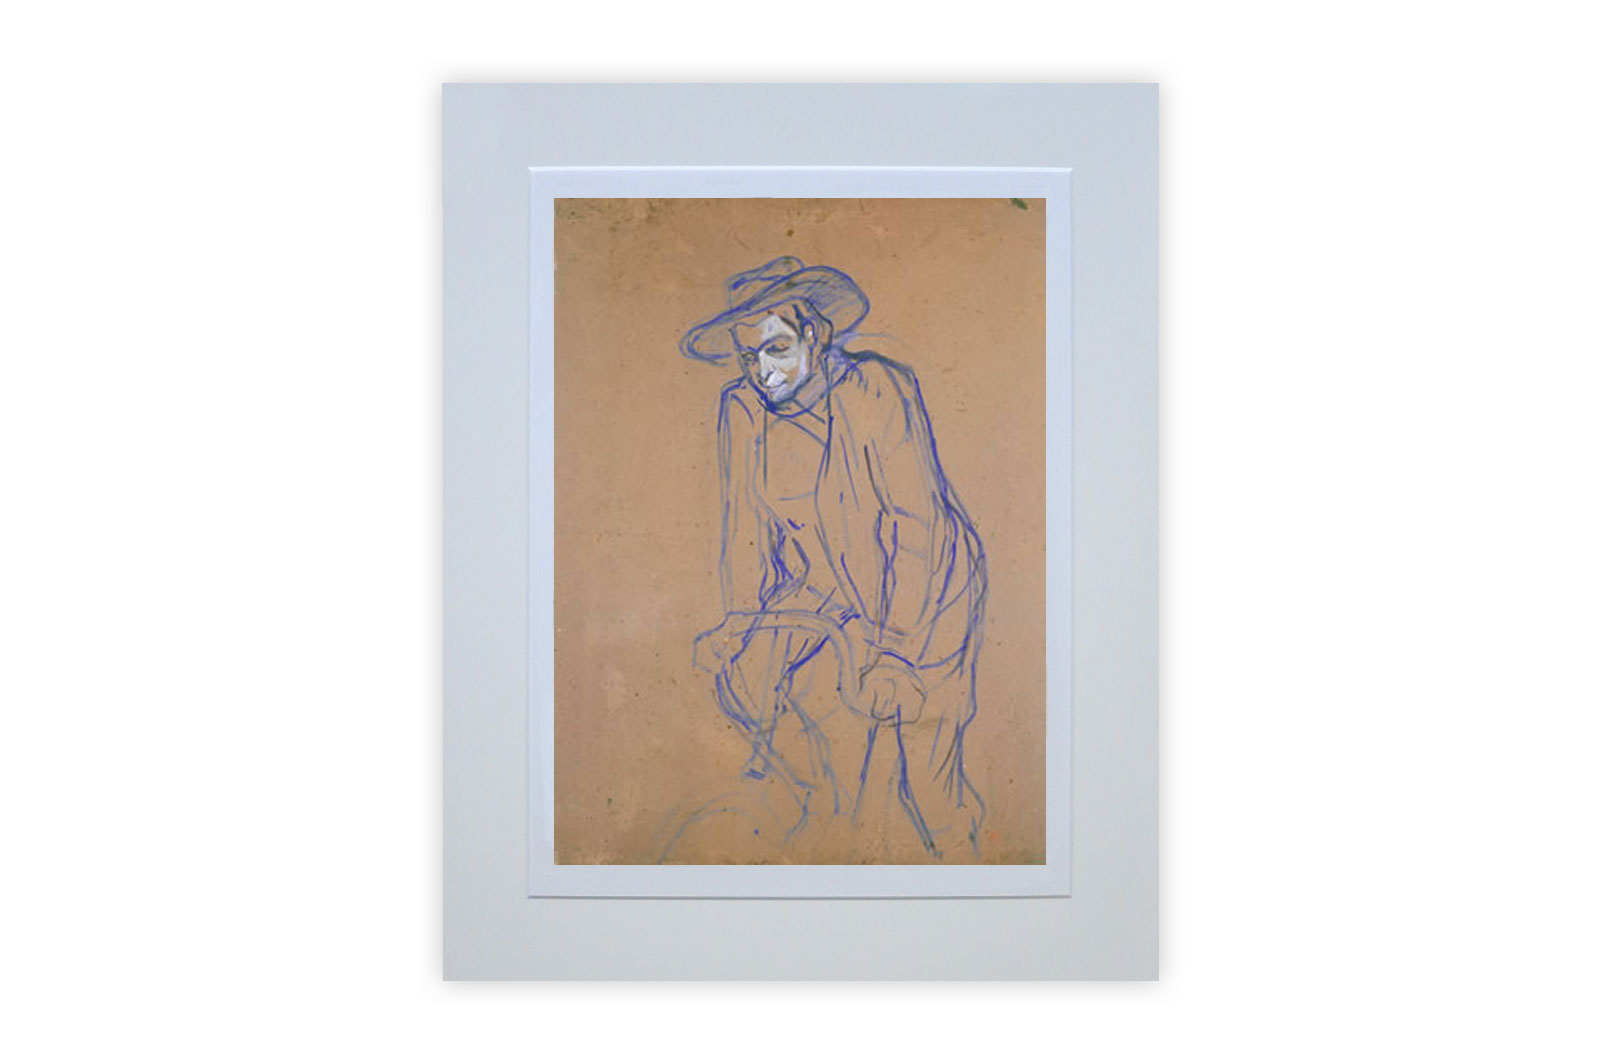 Aristide Bruant Riding a Bicycle by Henri de Toulouse-Lautrec – Giclee Print